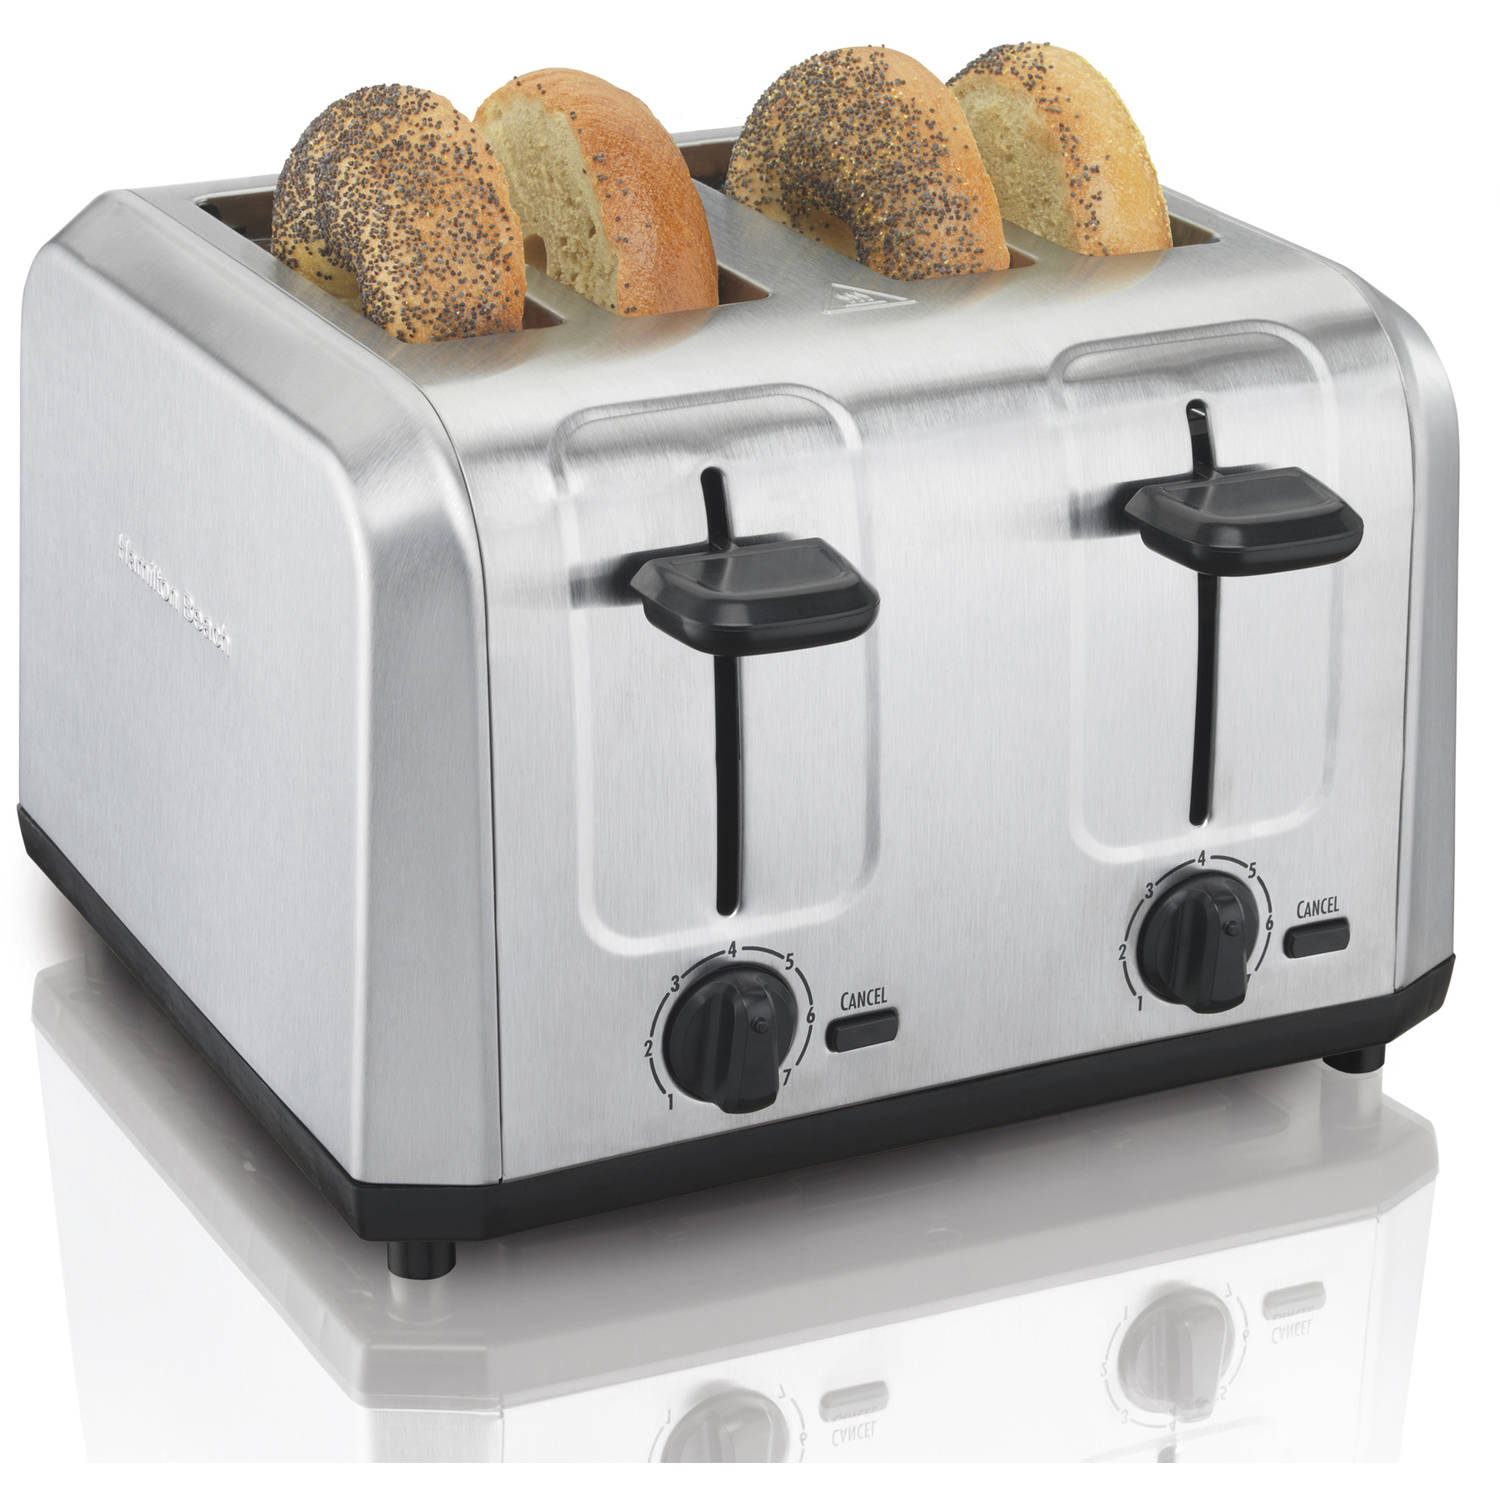 steel toshiba com sunroom shocking stunning bzv slice best rack mesmerize size toasting brus brilliant you amazon toasters toast slot buy lite for full kalorik stainless dualit under the toaster prodigious of elipta can blender